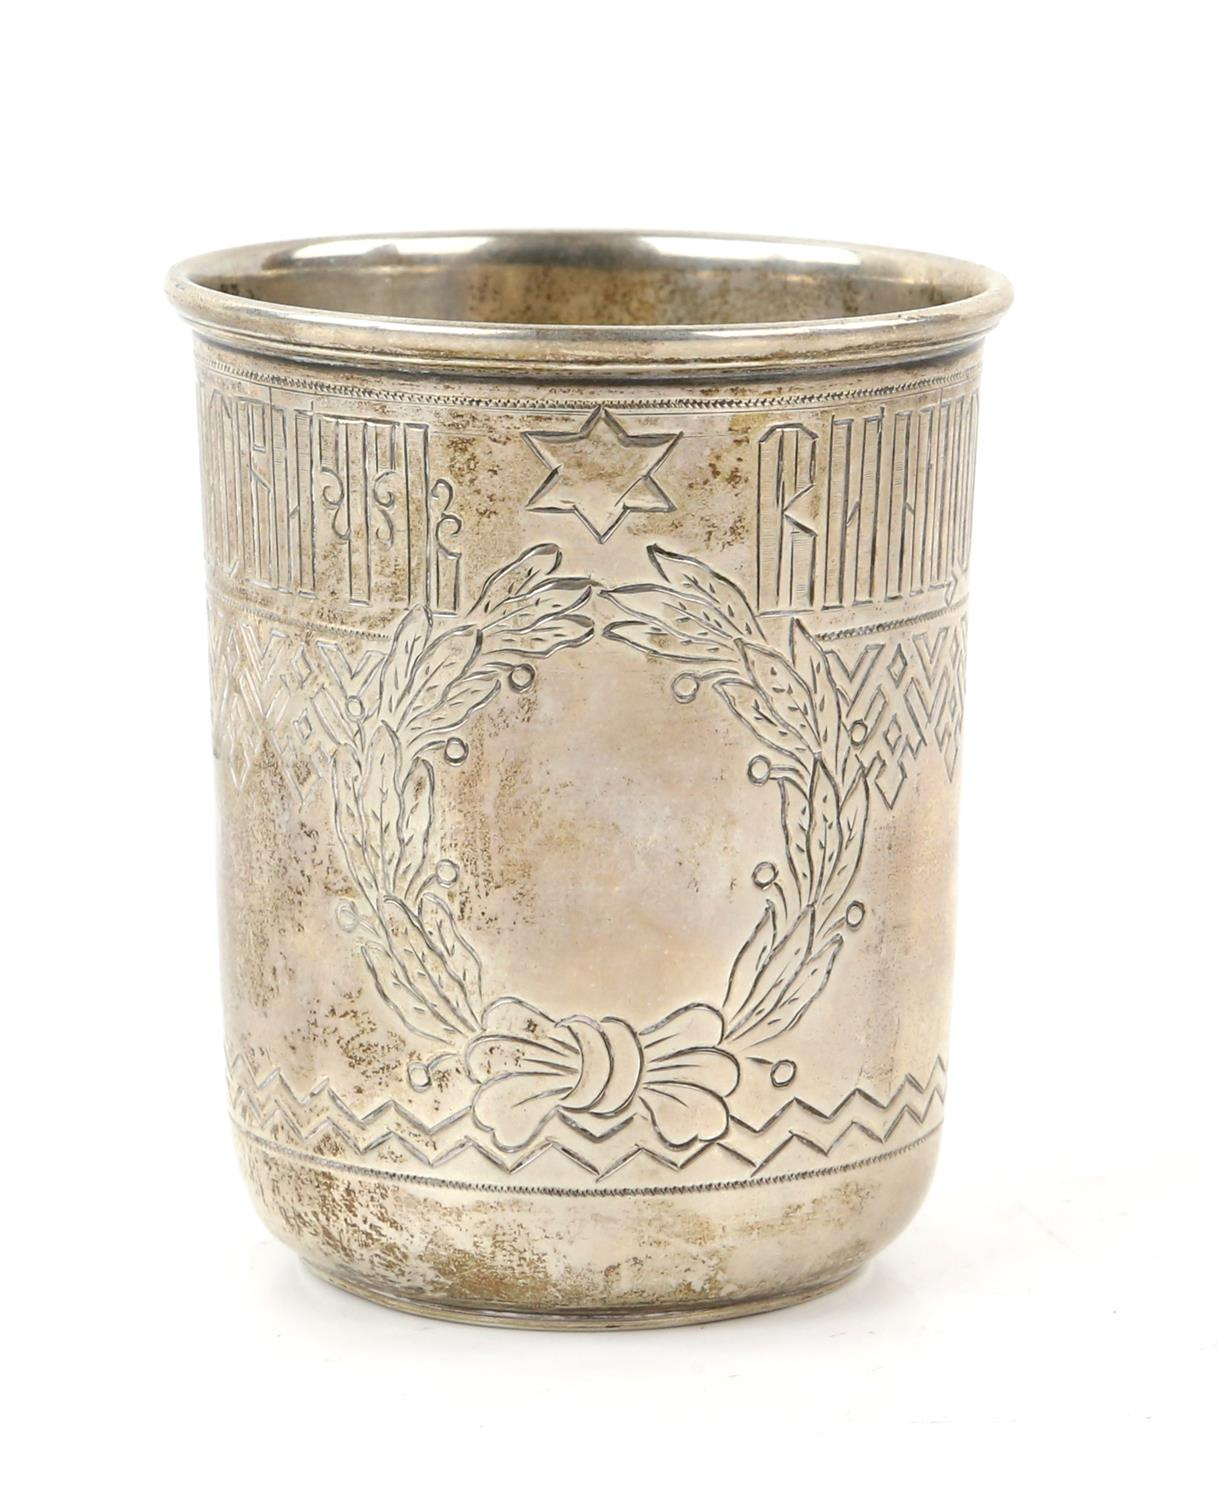 19th century Russian silver beaker with engraved decoration, maker's mark 'CNA', Moscow, 1883, 2.